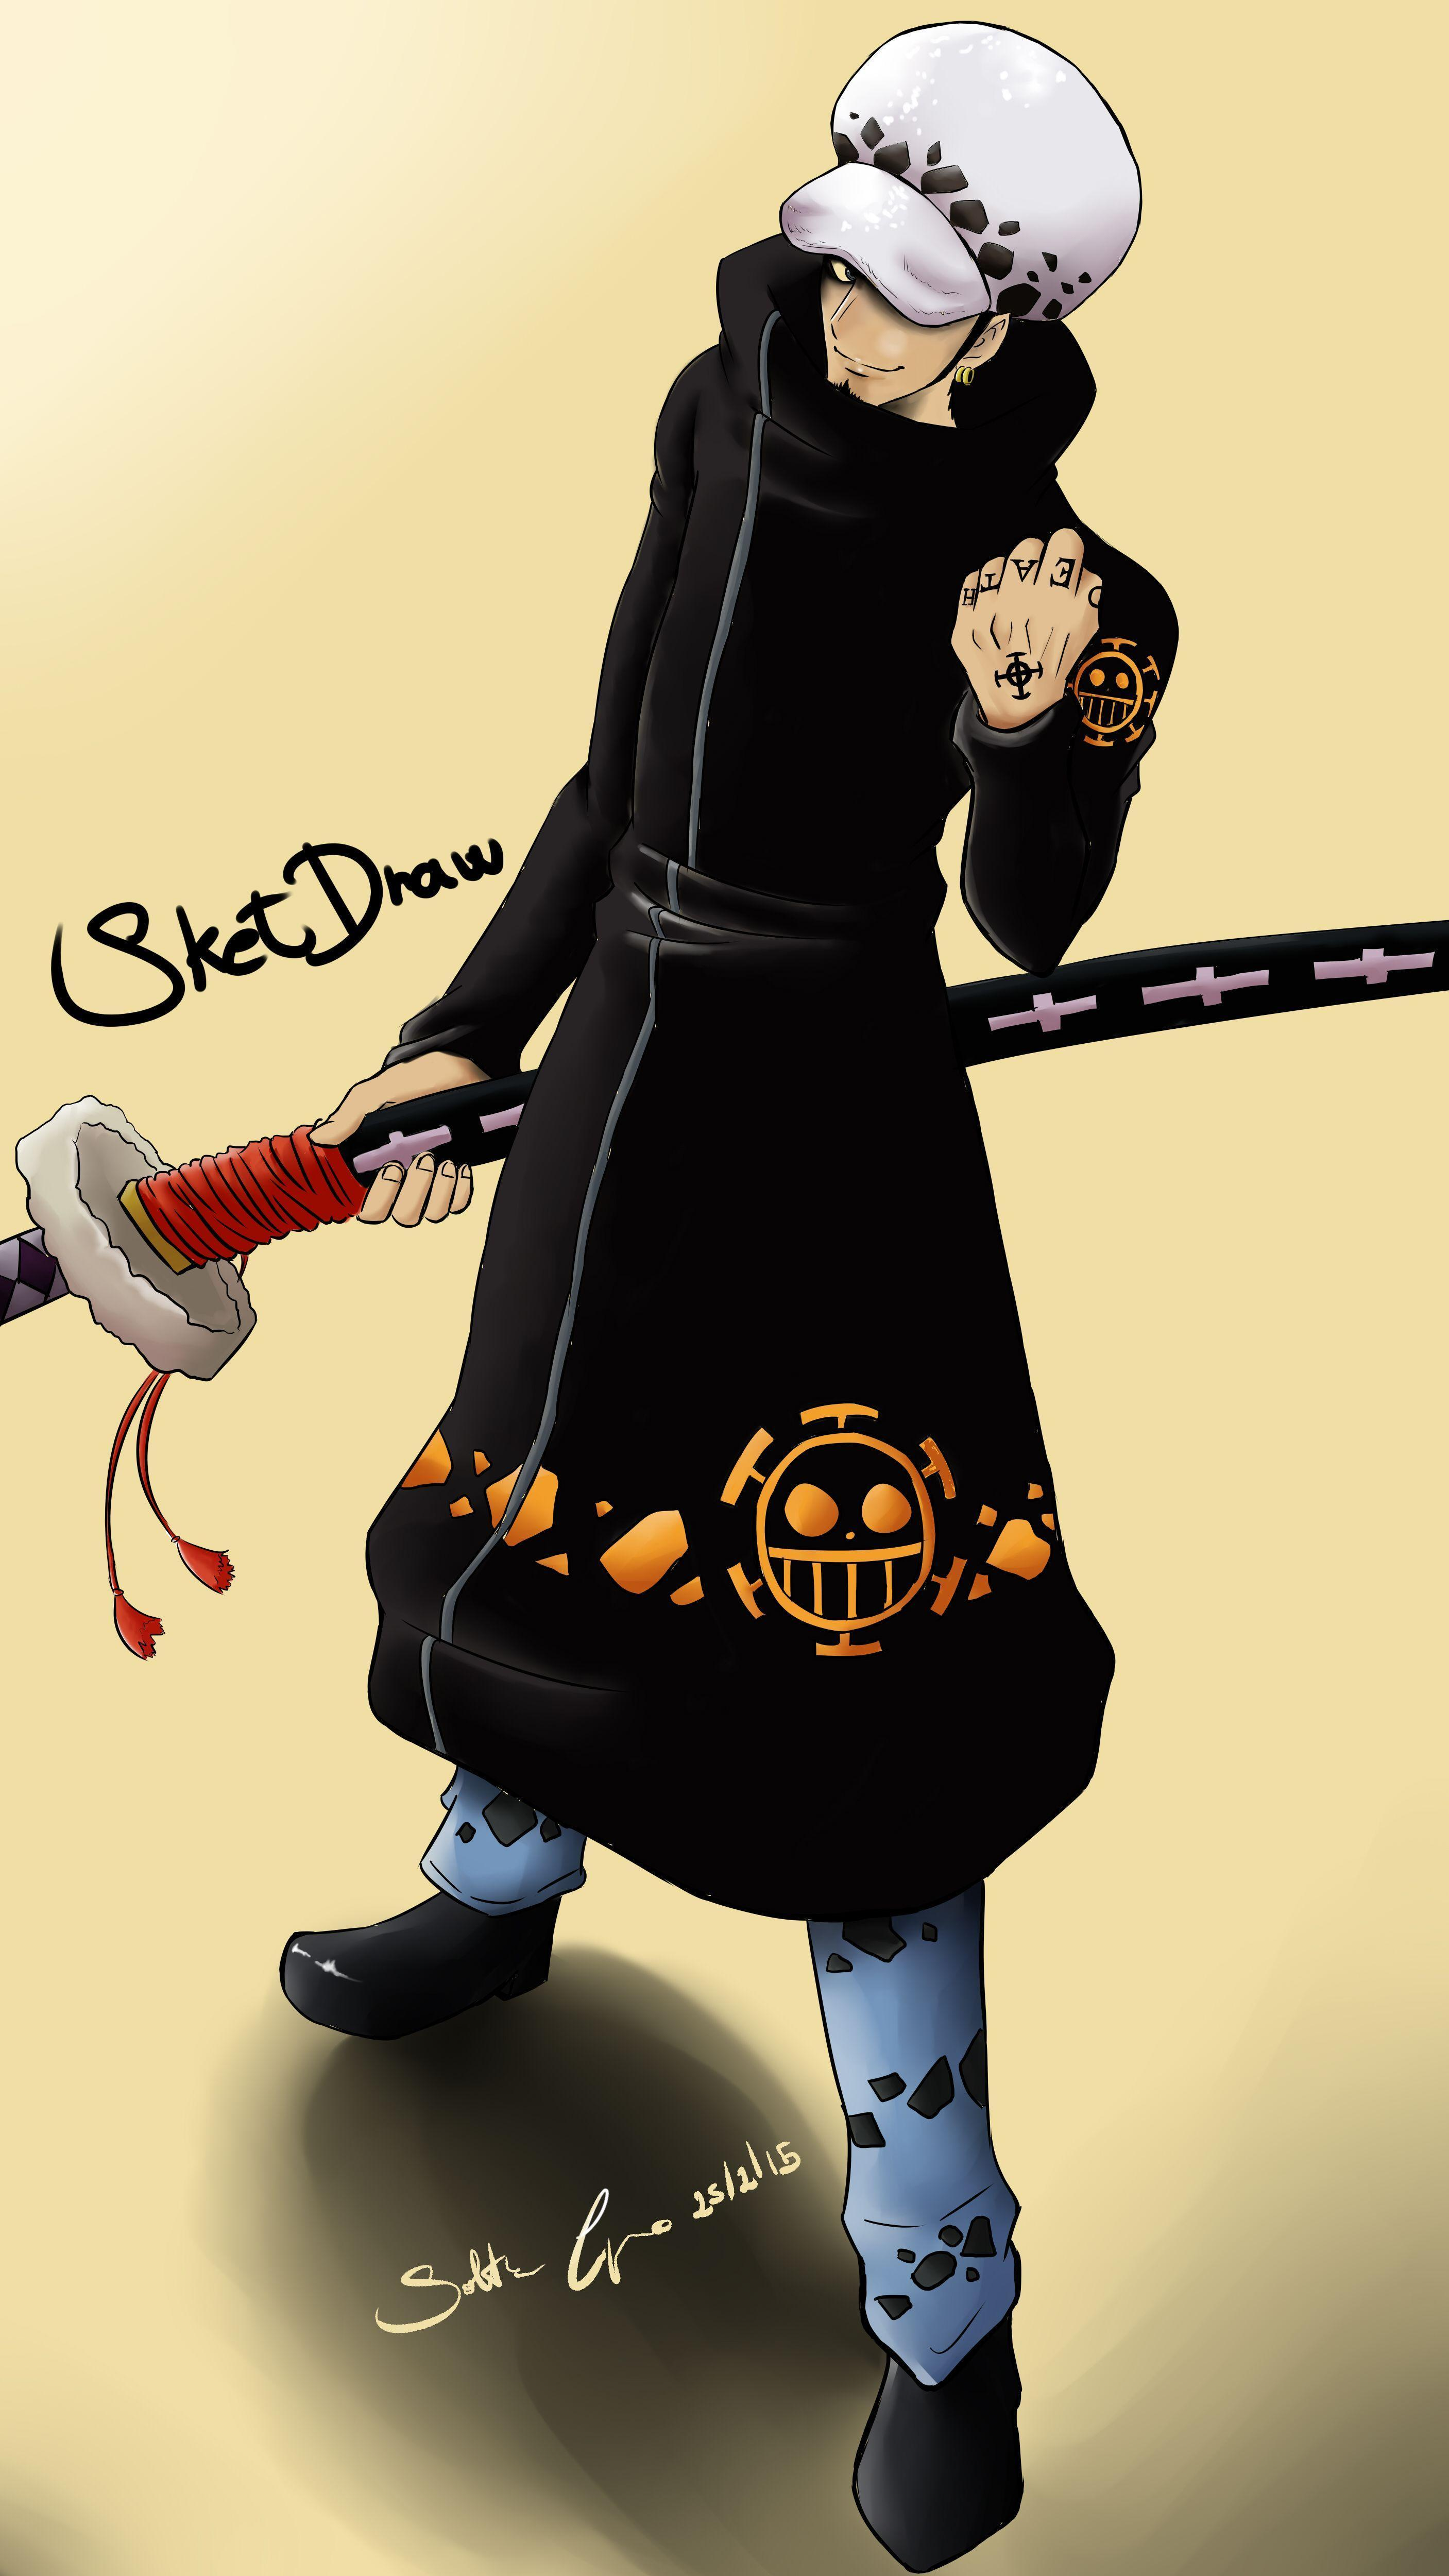 Water law anime one piece mangaka character, trafalgar law,. One Piece Law Wallpapers - Wallpaper Cave